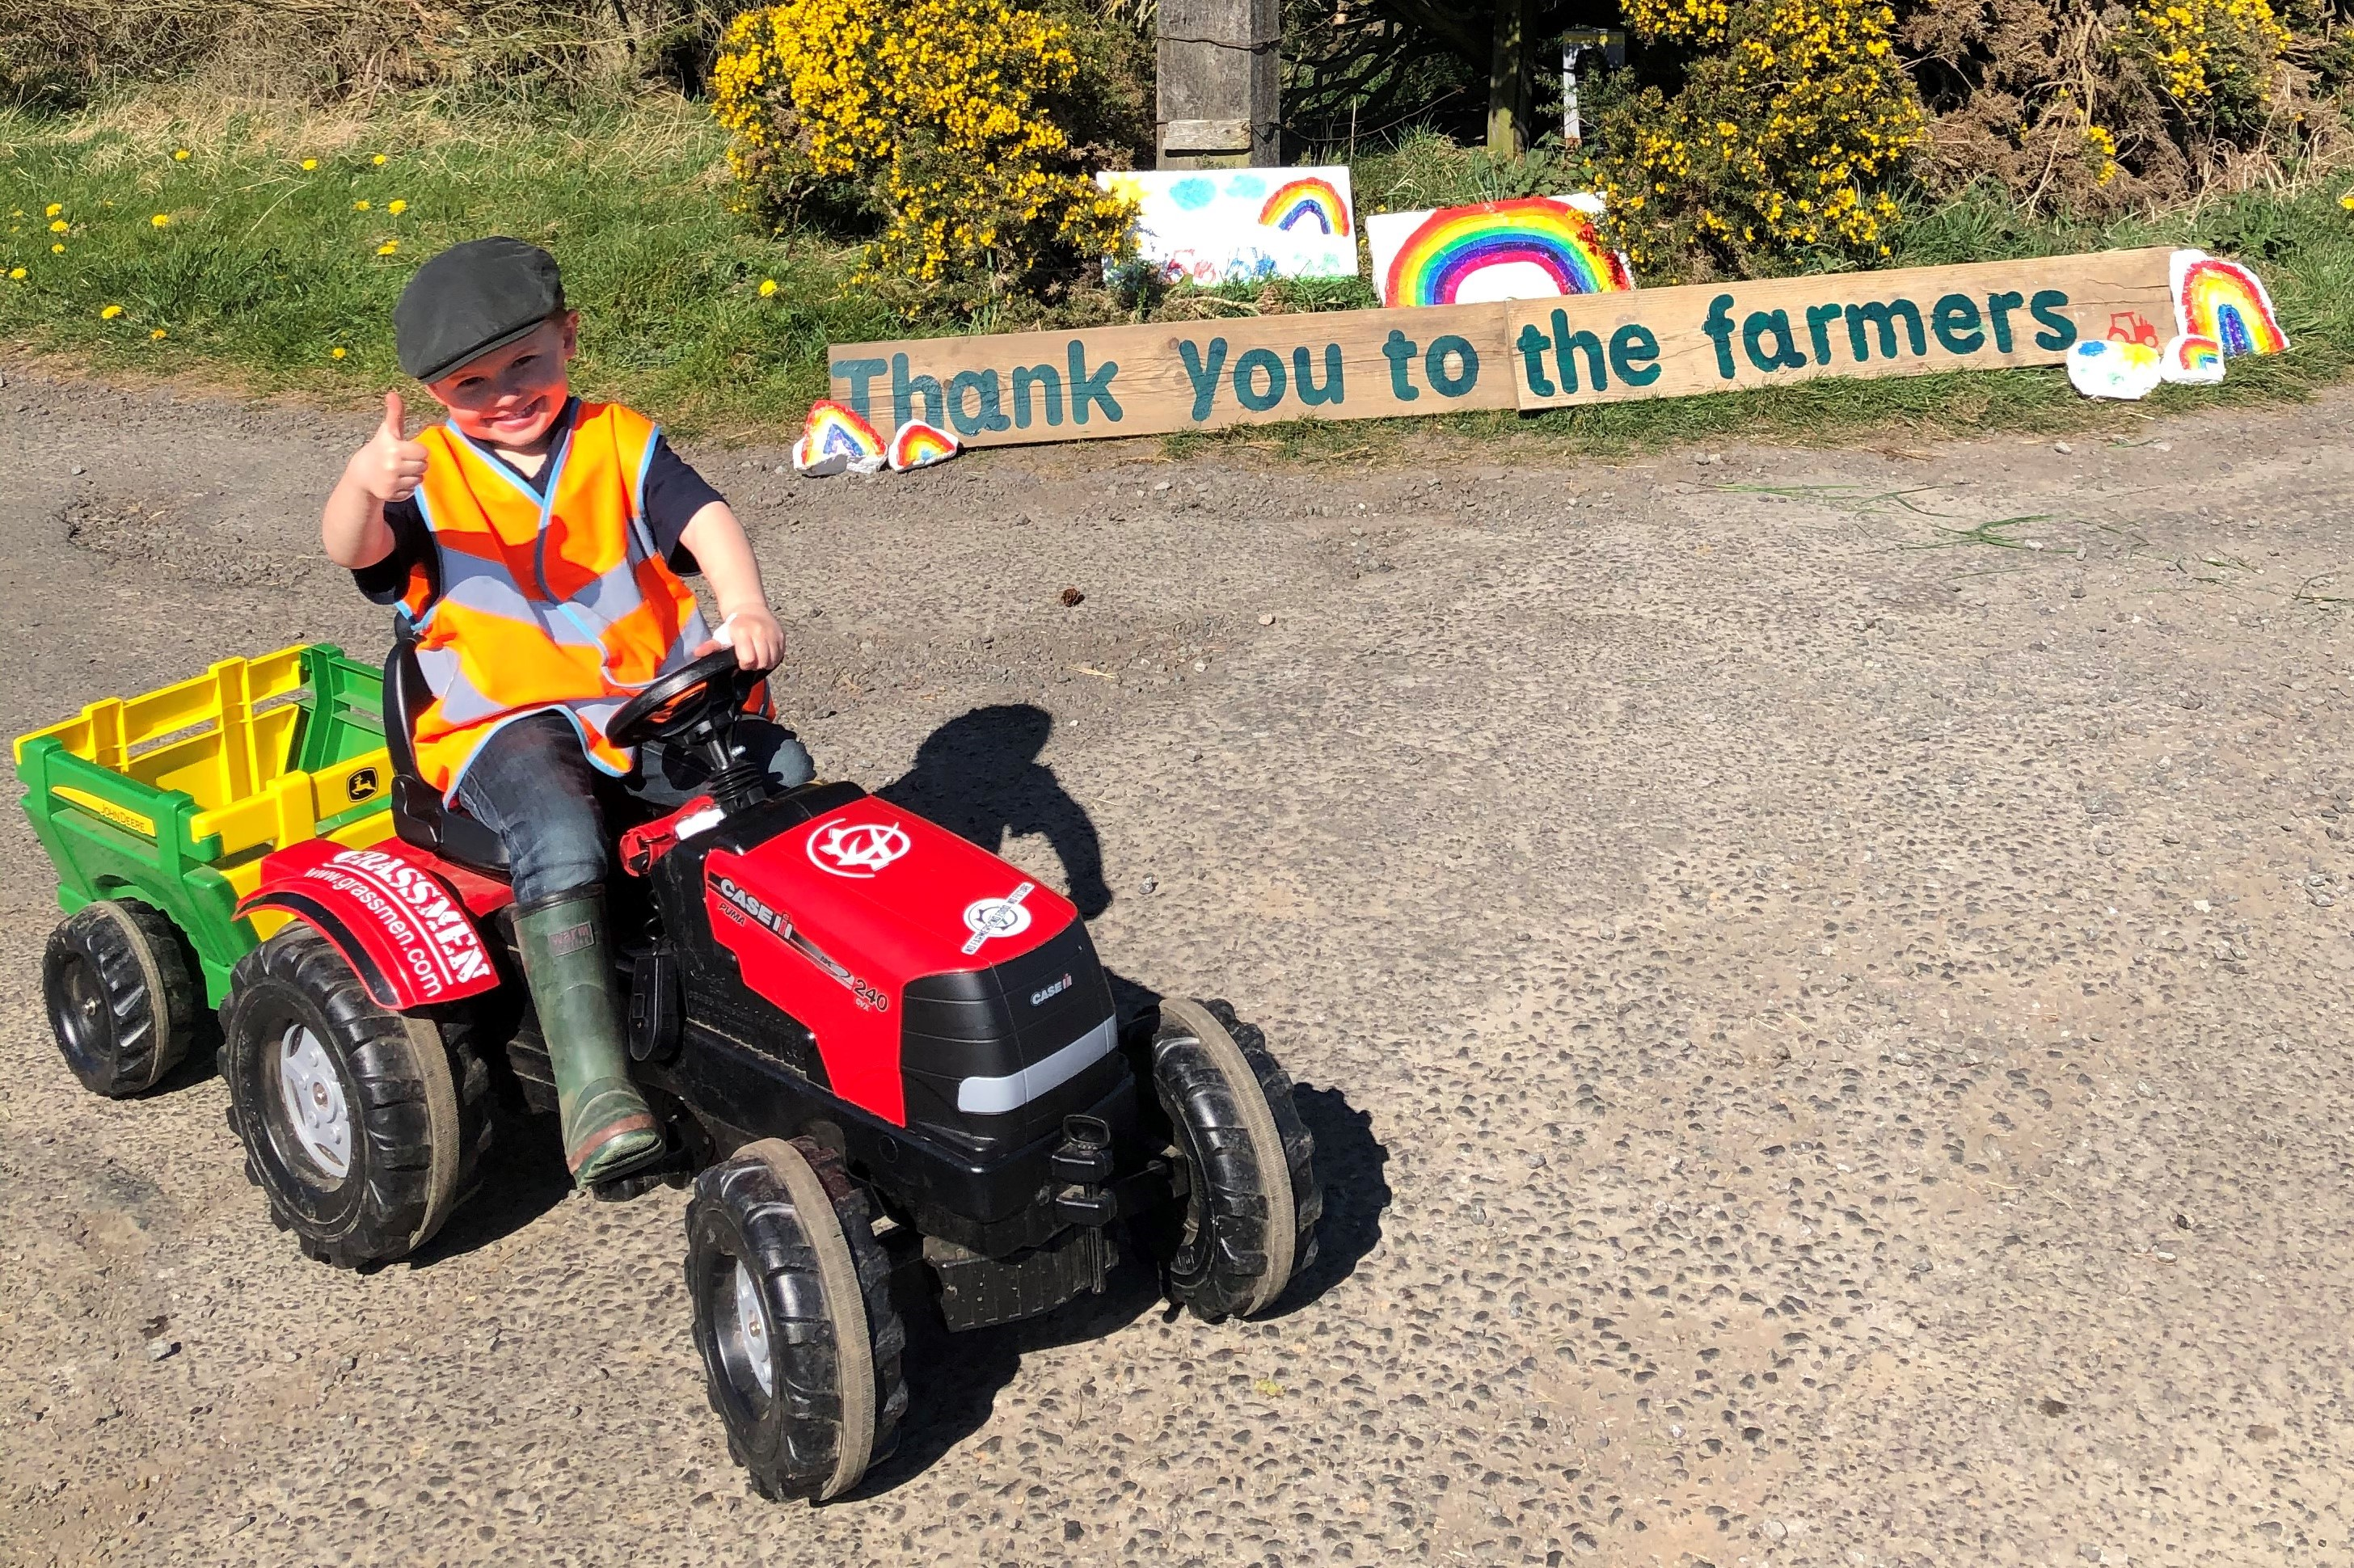 Warm Welly Company promotes the countryside and home learning with 4-year-old Farmer Sam